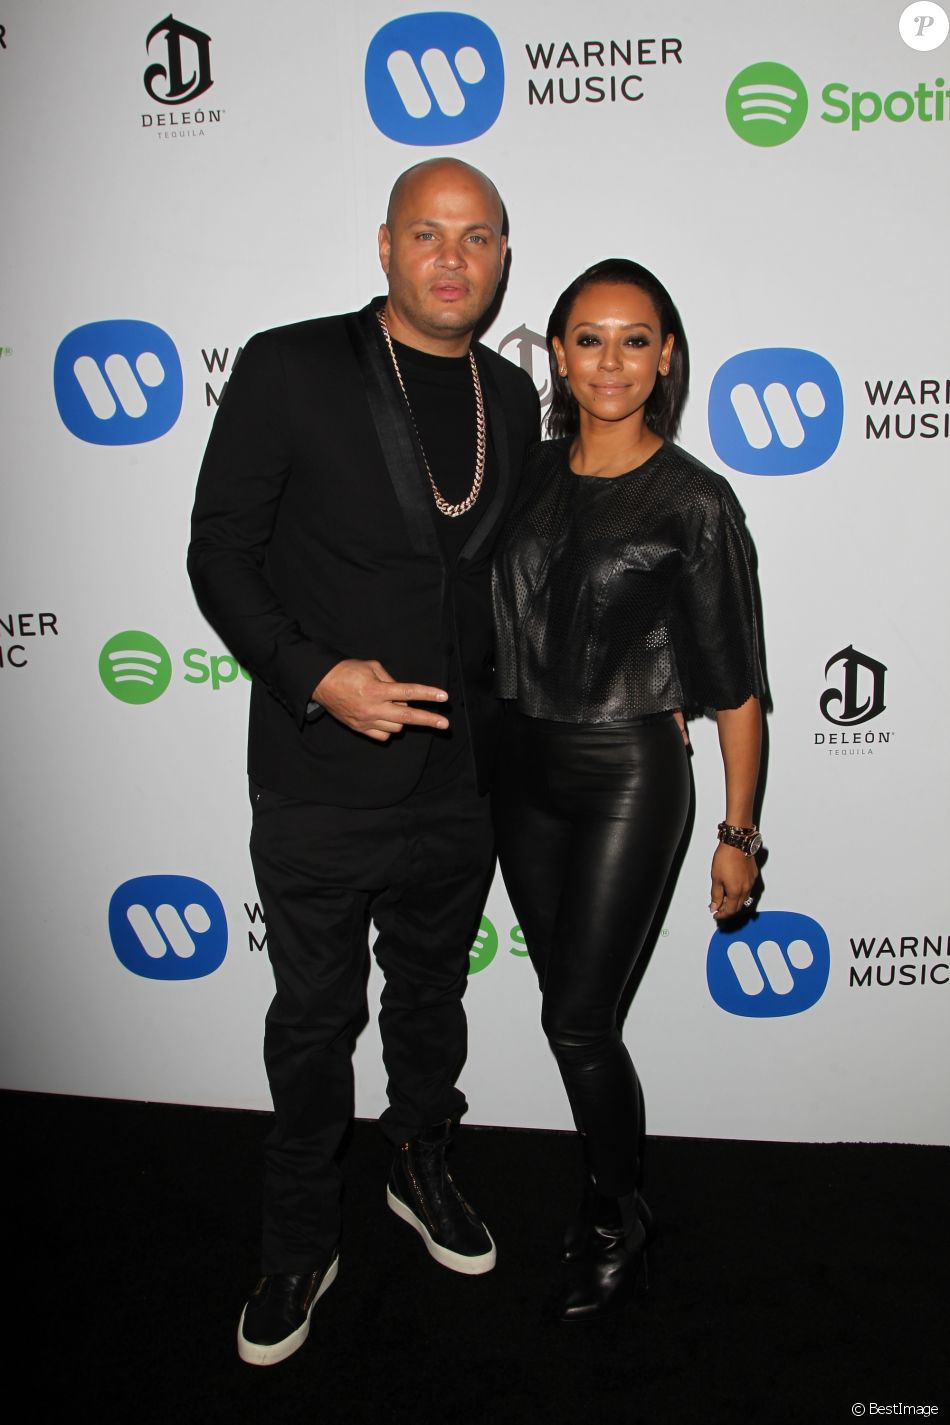 Melanie Brown (Mel B) et son mari Stephen Belafonte à la Soirée de Warner Music Group lors des Grammy Awards au Chateau Marmont à Los Angeles, le 8 février 2015.